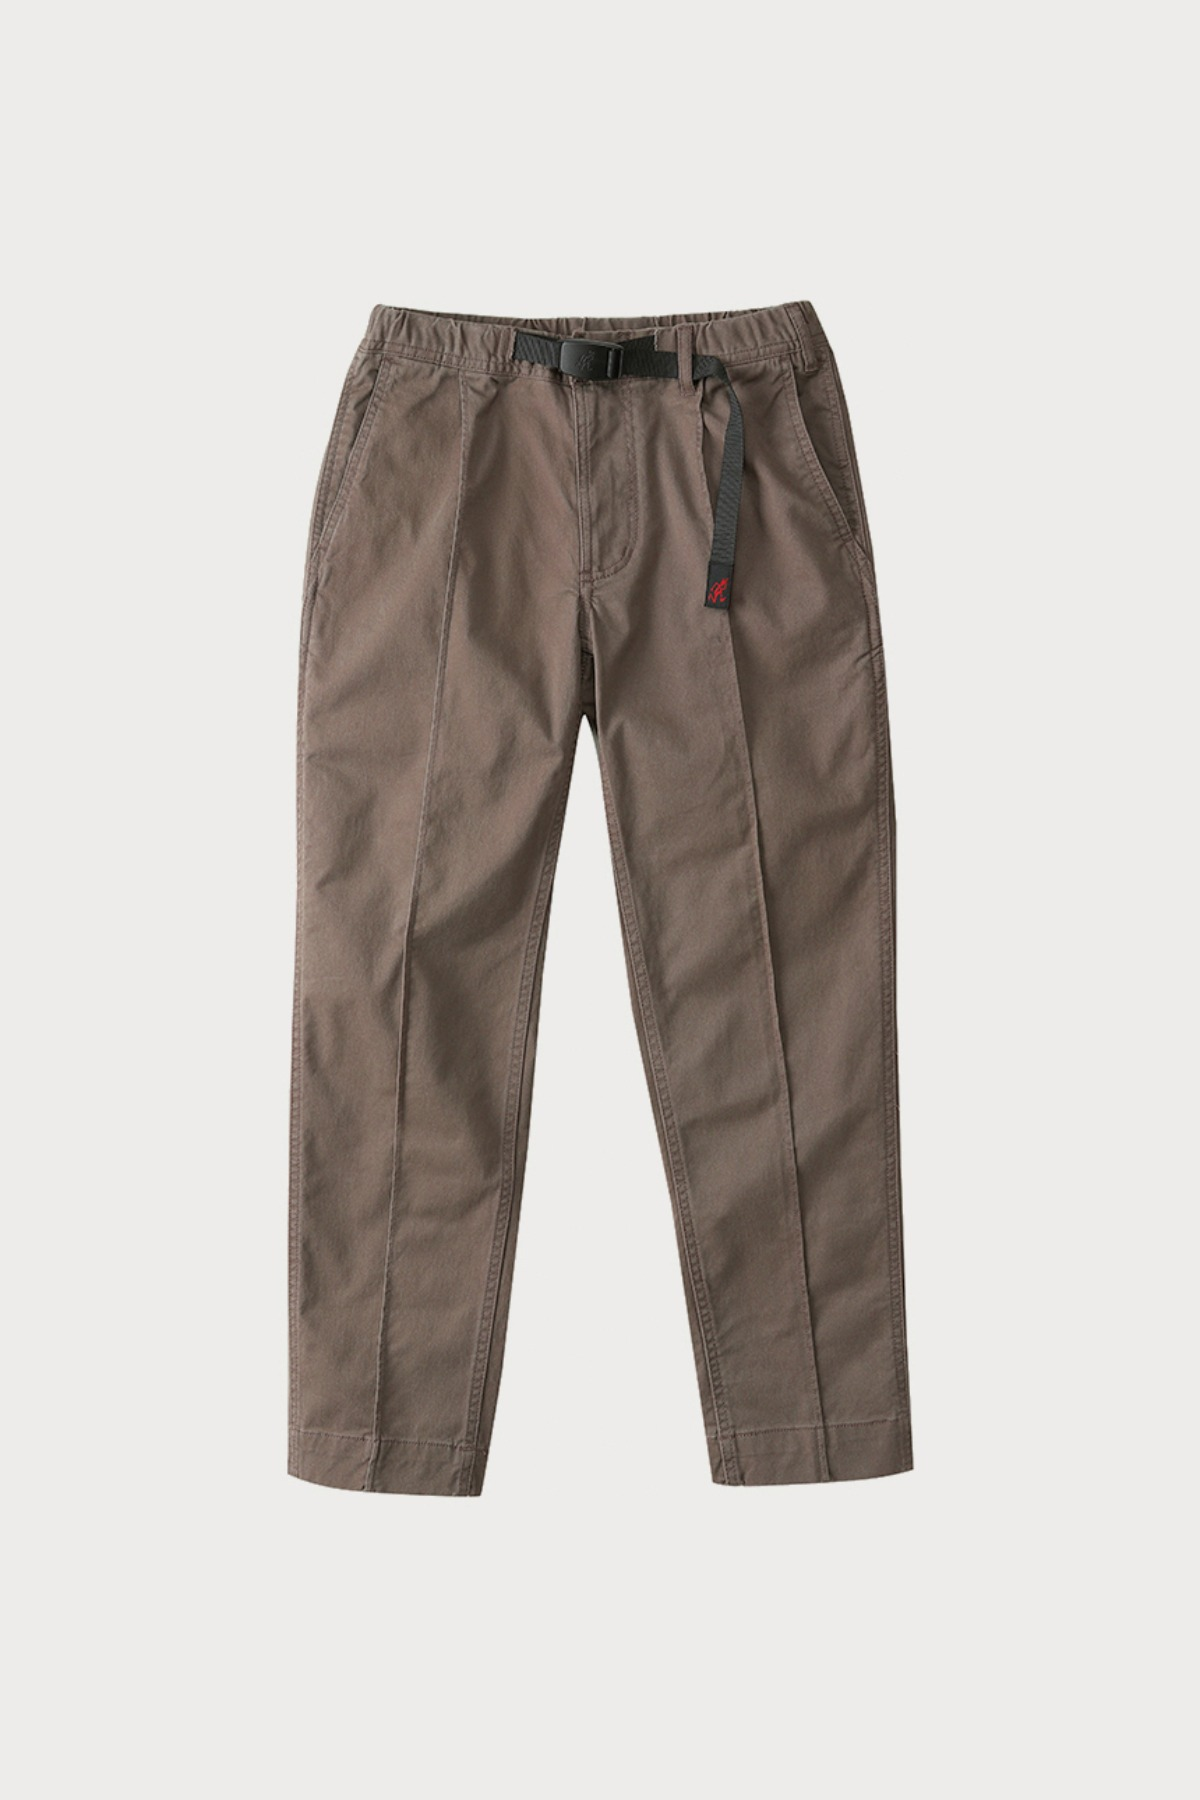 PINTUCK PANTS WALNAUT